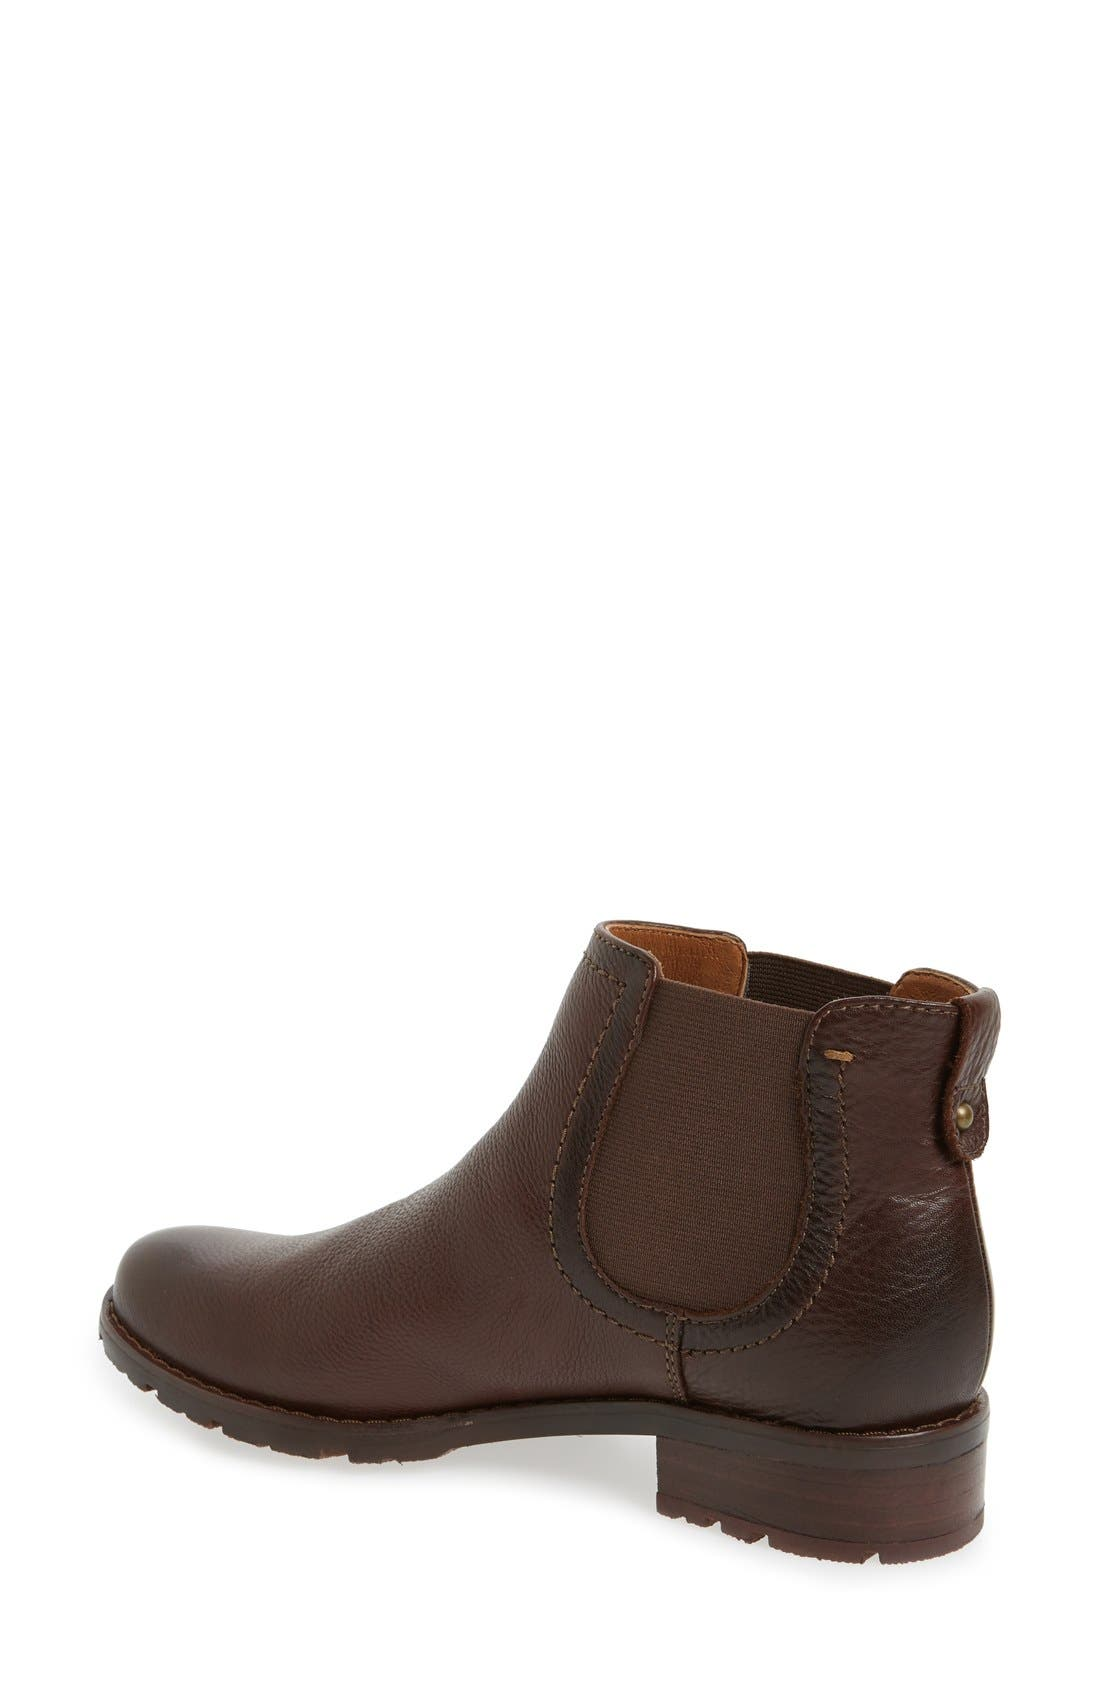 'Selby' Chelsea Bootie,                             Alternate thumbnail 15, color,